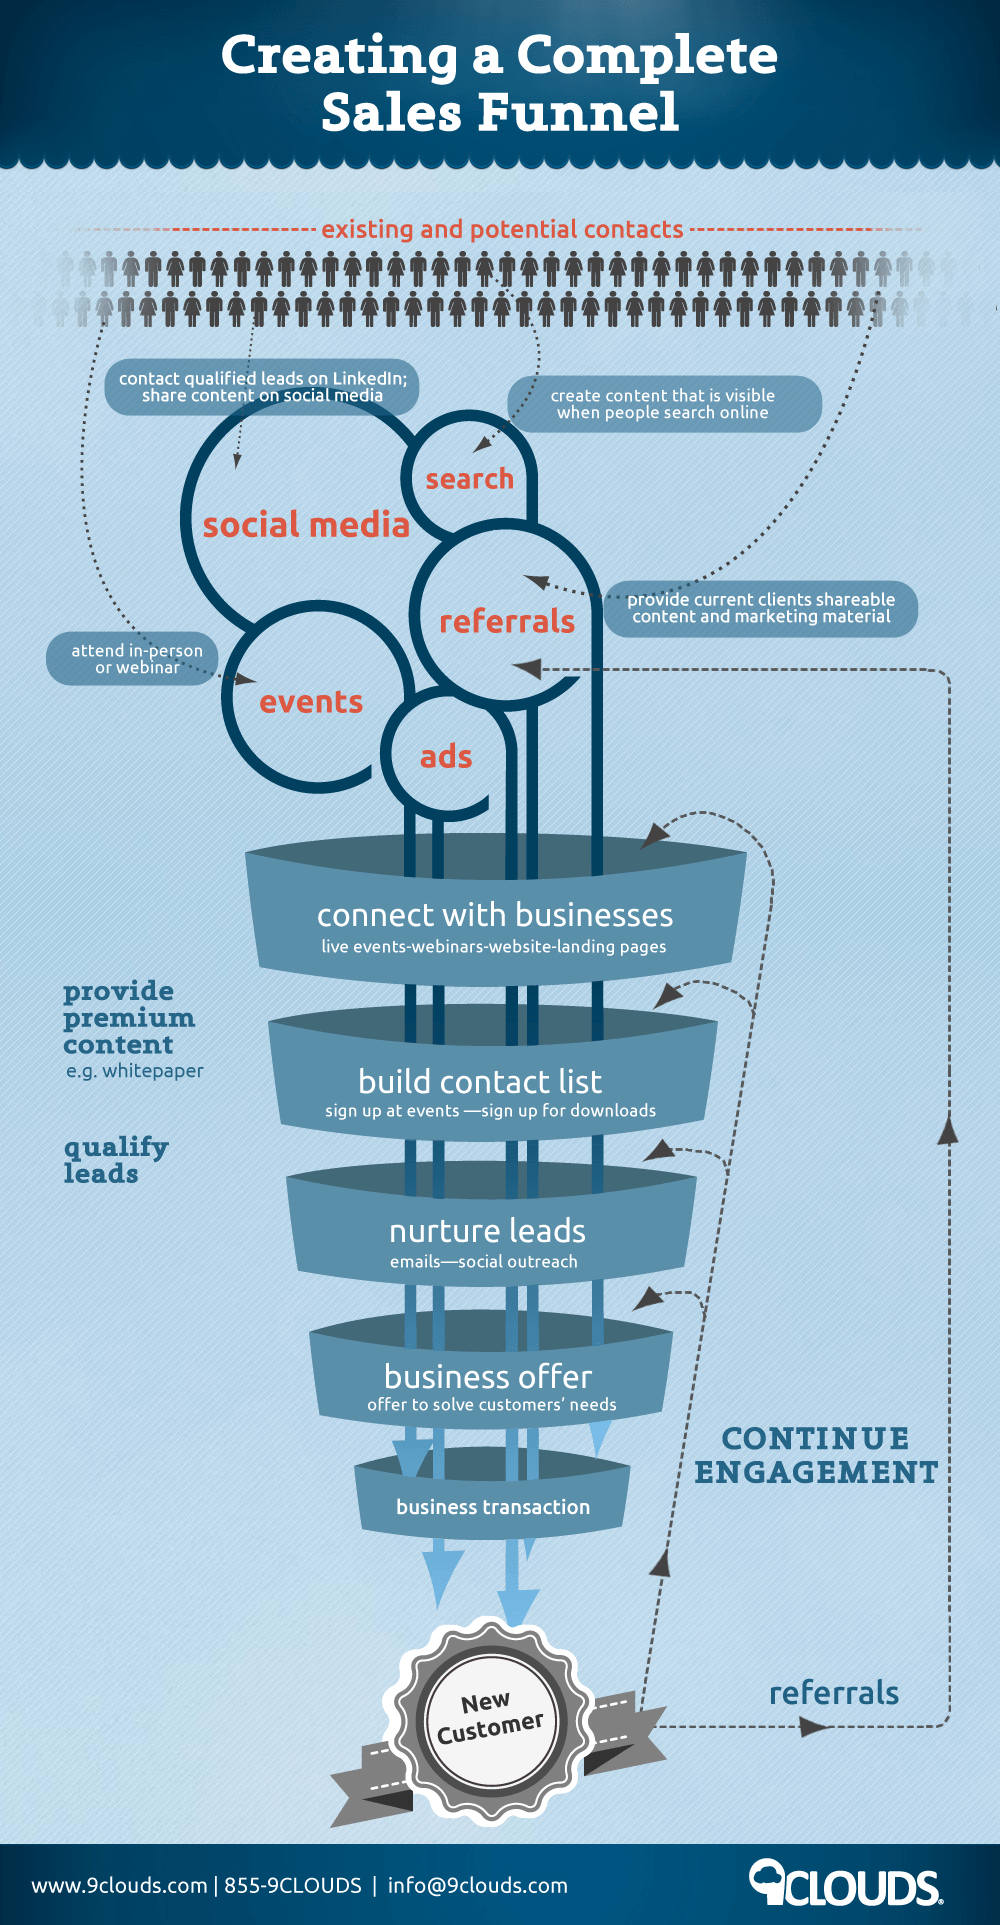 Creating a Complete Sales Funnel [Infographic]